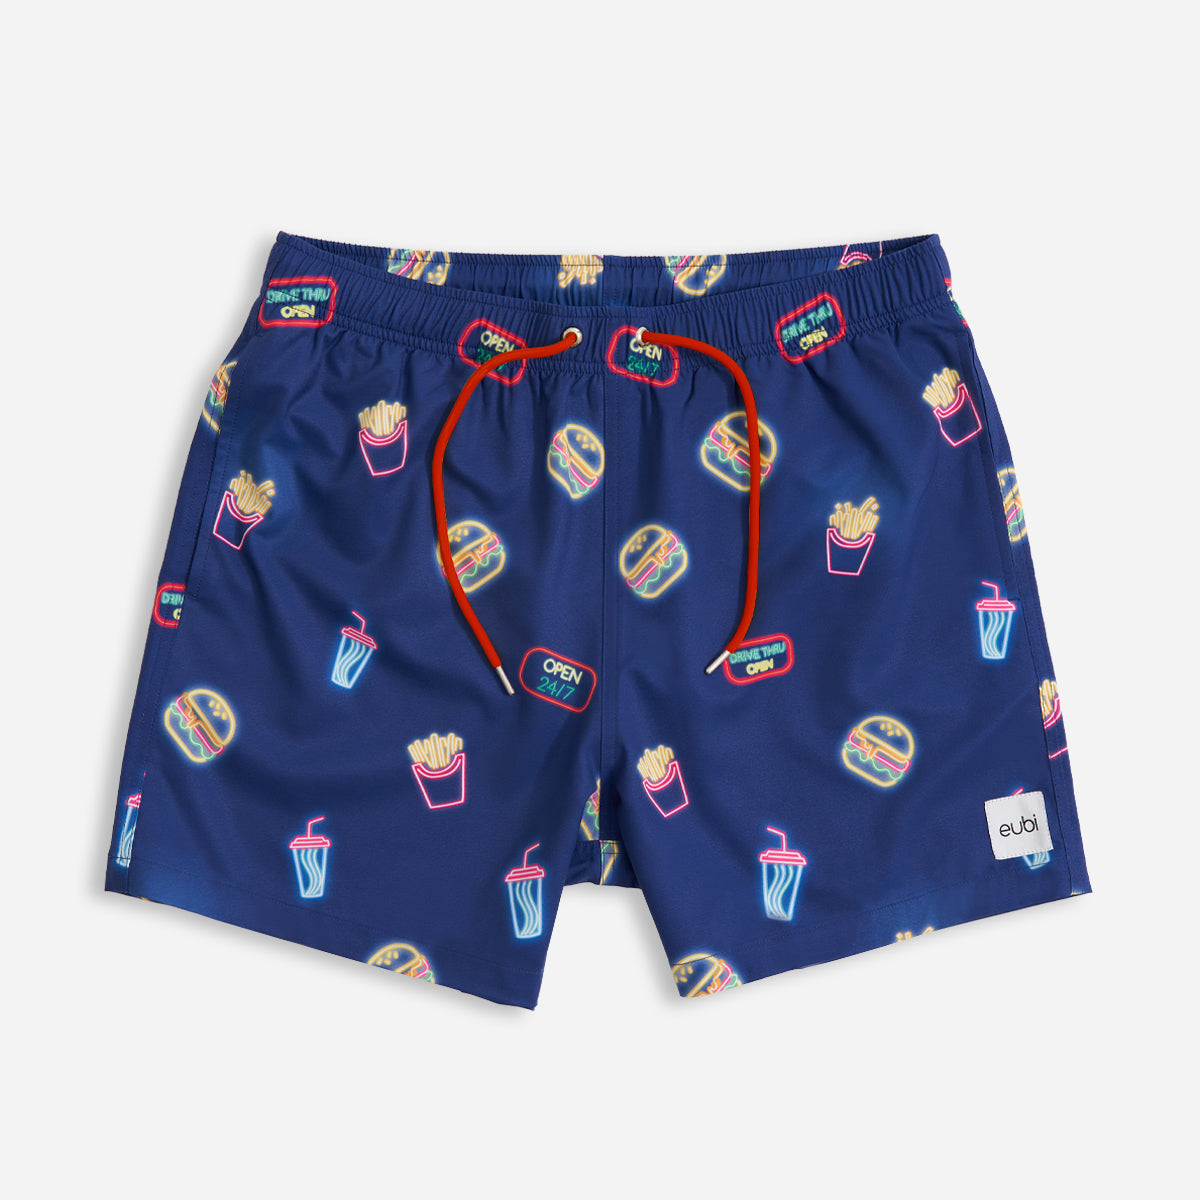 Burgers & Fries Signature Flex Swimshorts